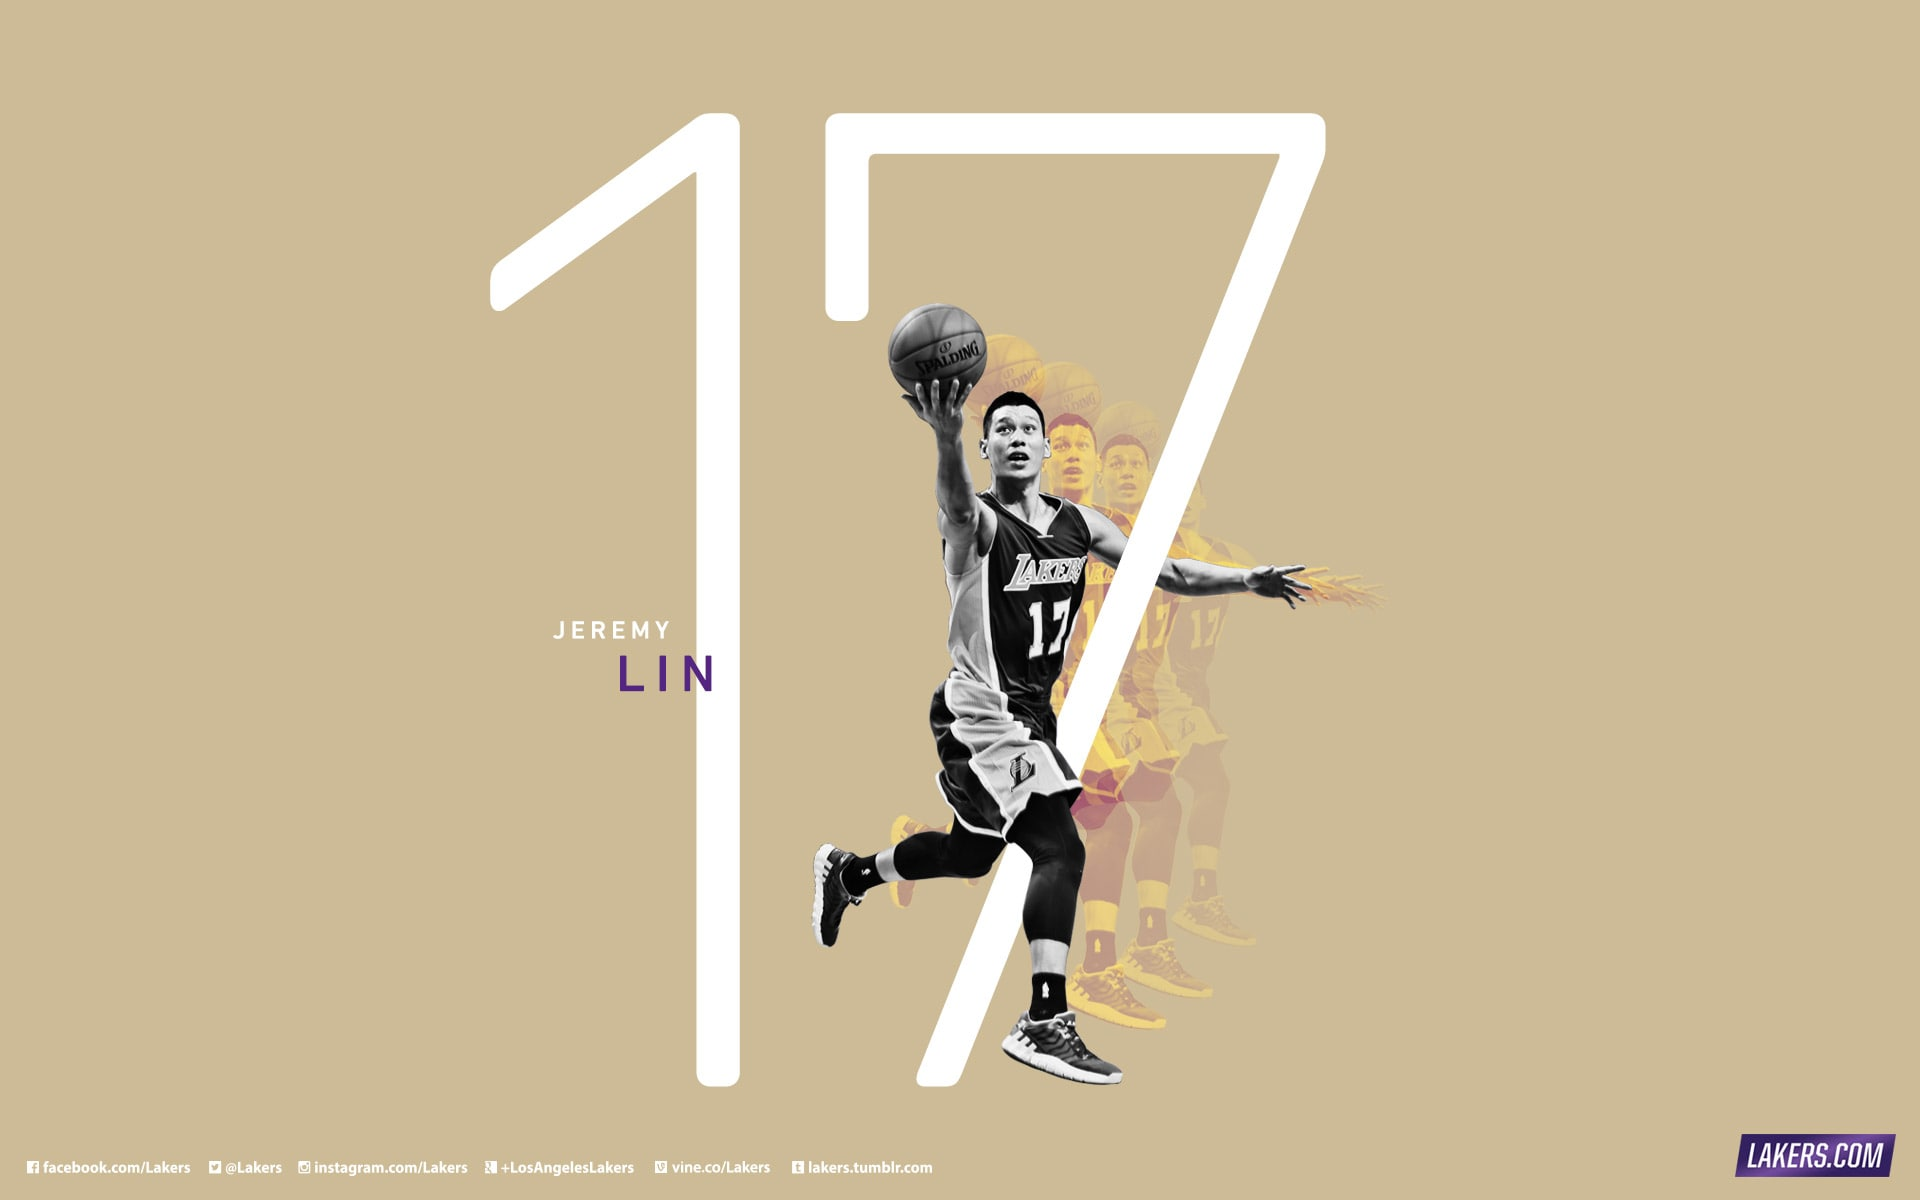 Jeremy Lin Player Wallpaper